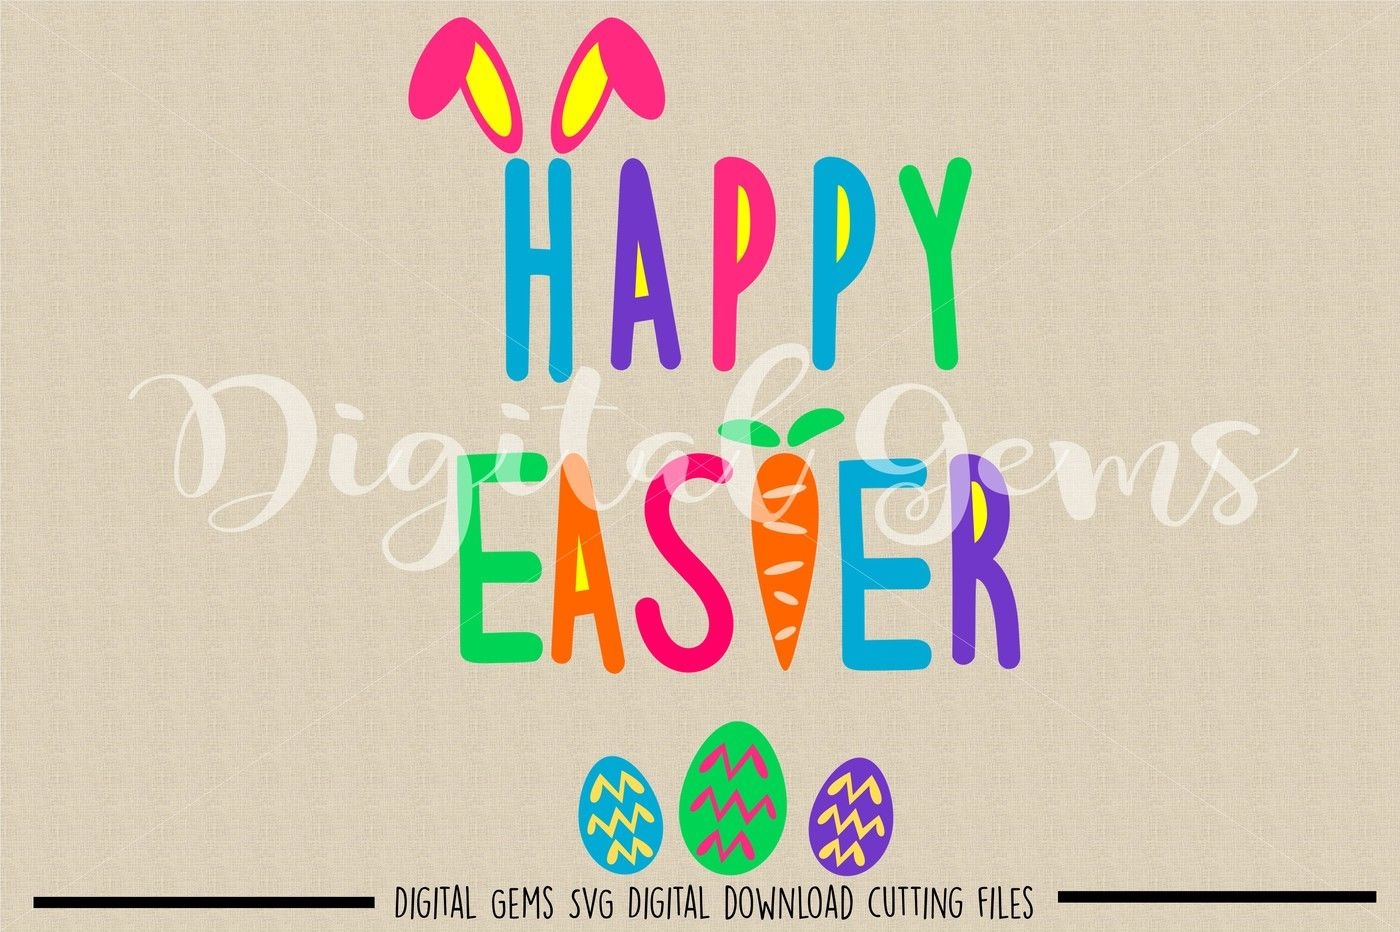 Happy Easter Svg Dxf Eps Png Files By Digital Gems